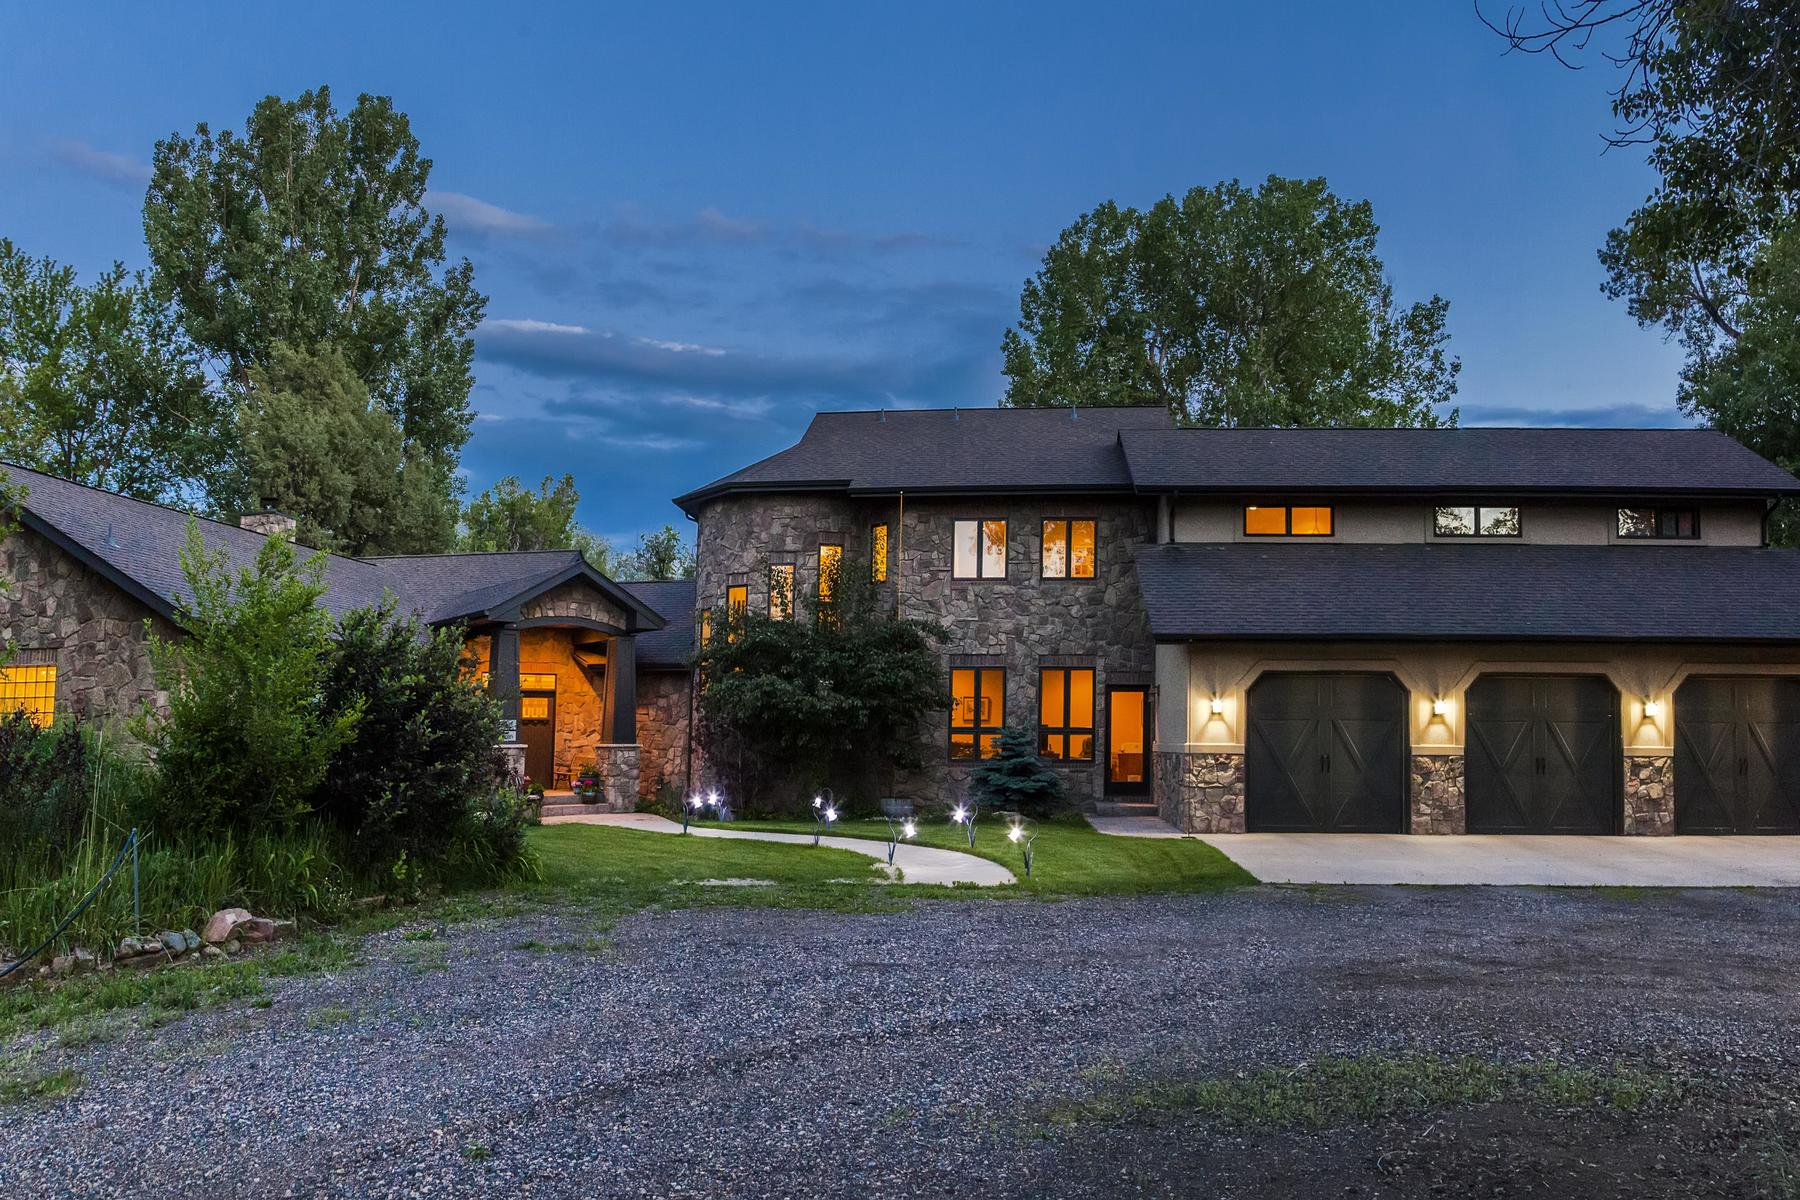 Single Family Home for Active at Riverfront Estate 2422 Black Crow Ln Loveland, Colorado 80537 United States